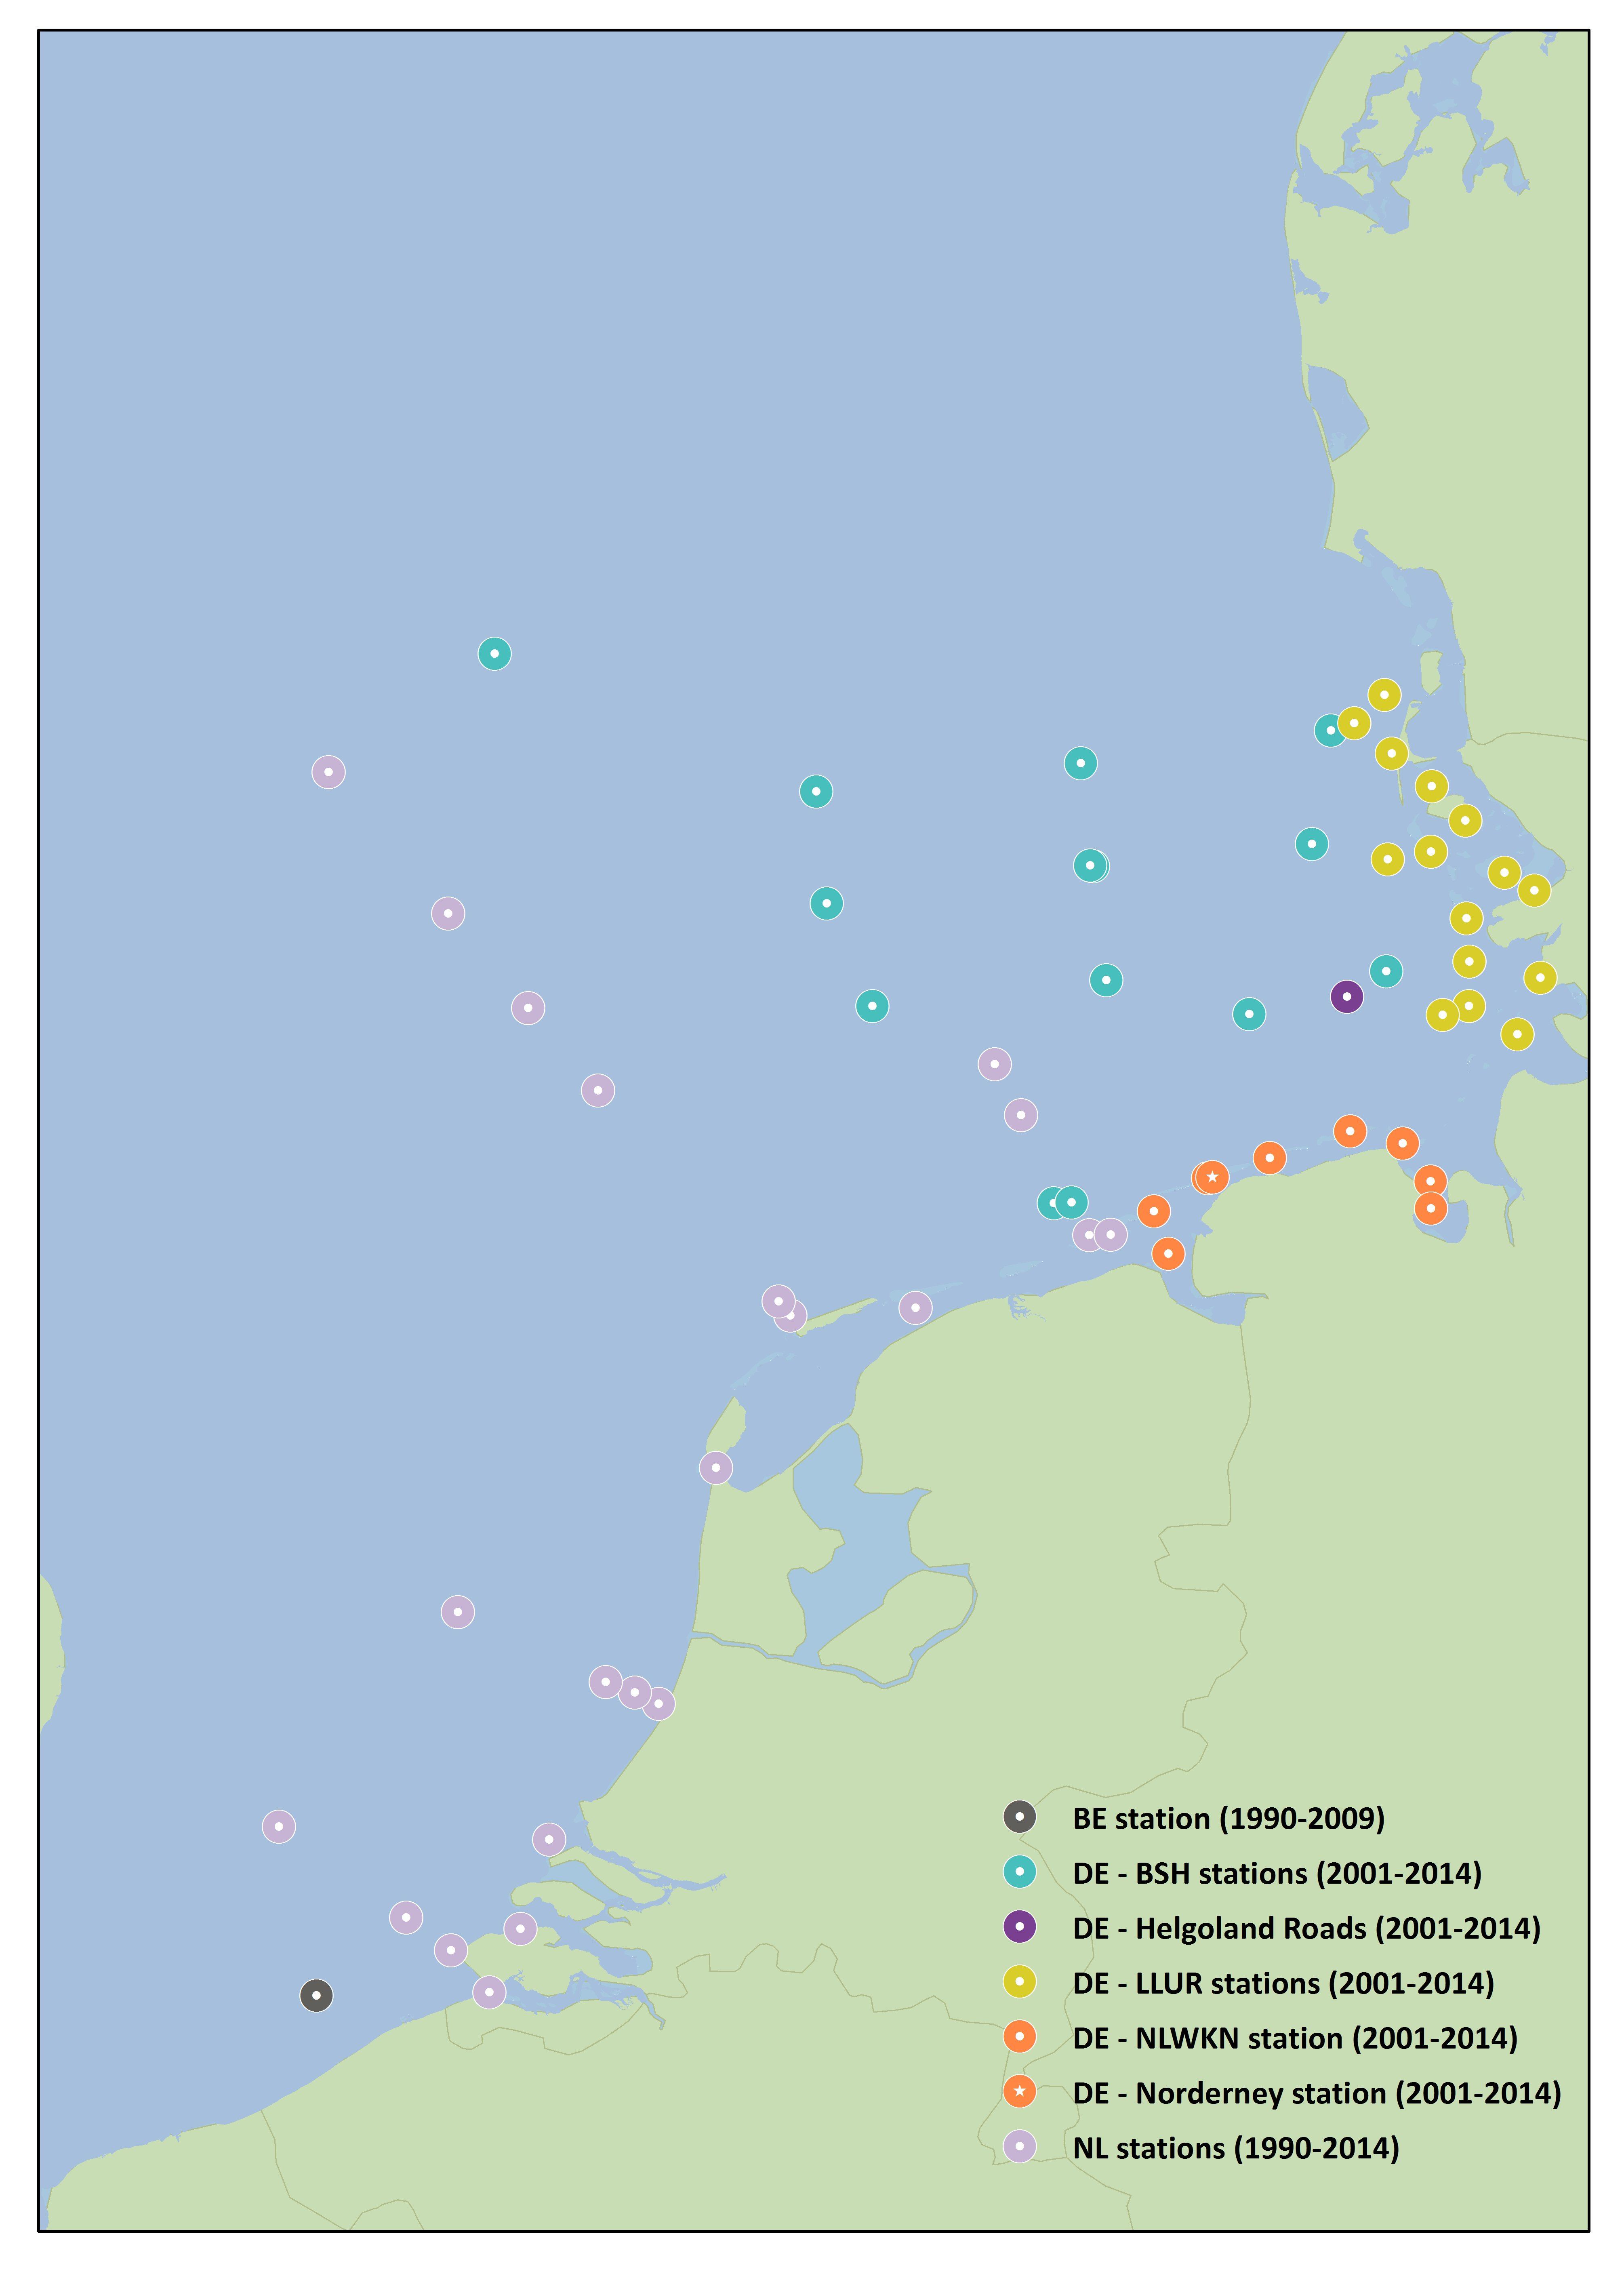 Trends In Blooms Of Nuisance Phytoplankton Species Phaeocystis In - Belgium political map 2001